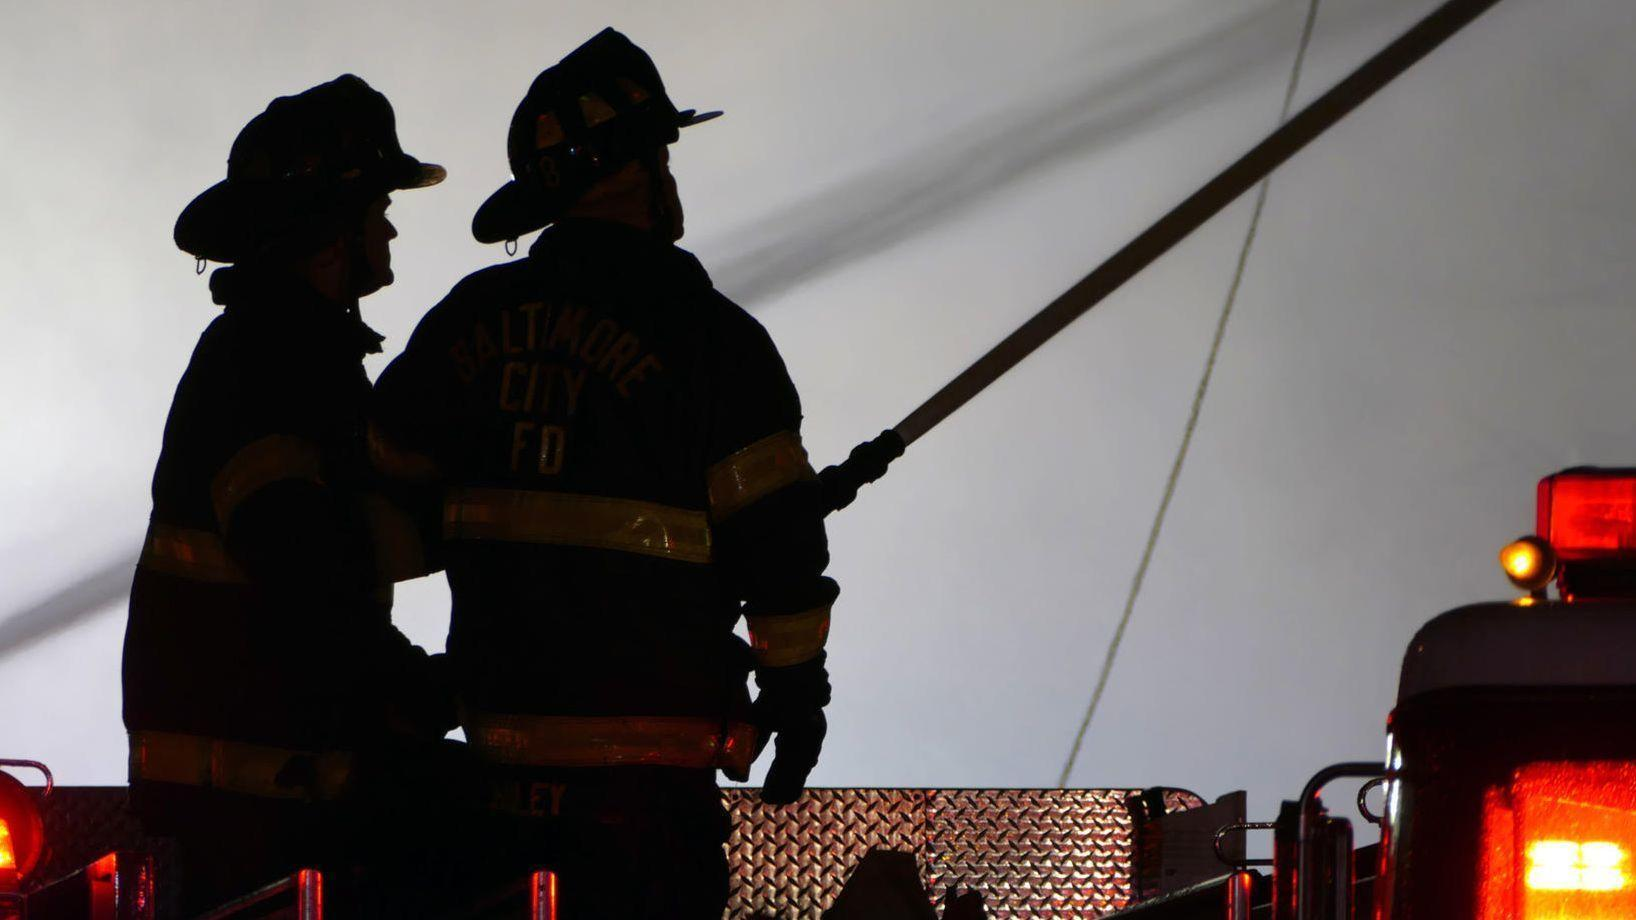 City firefighters past and present honored at Memorial